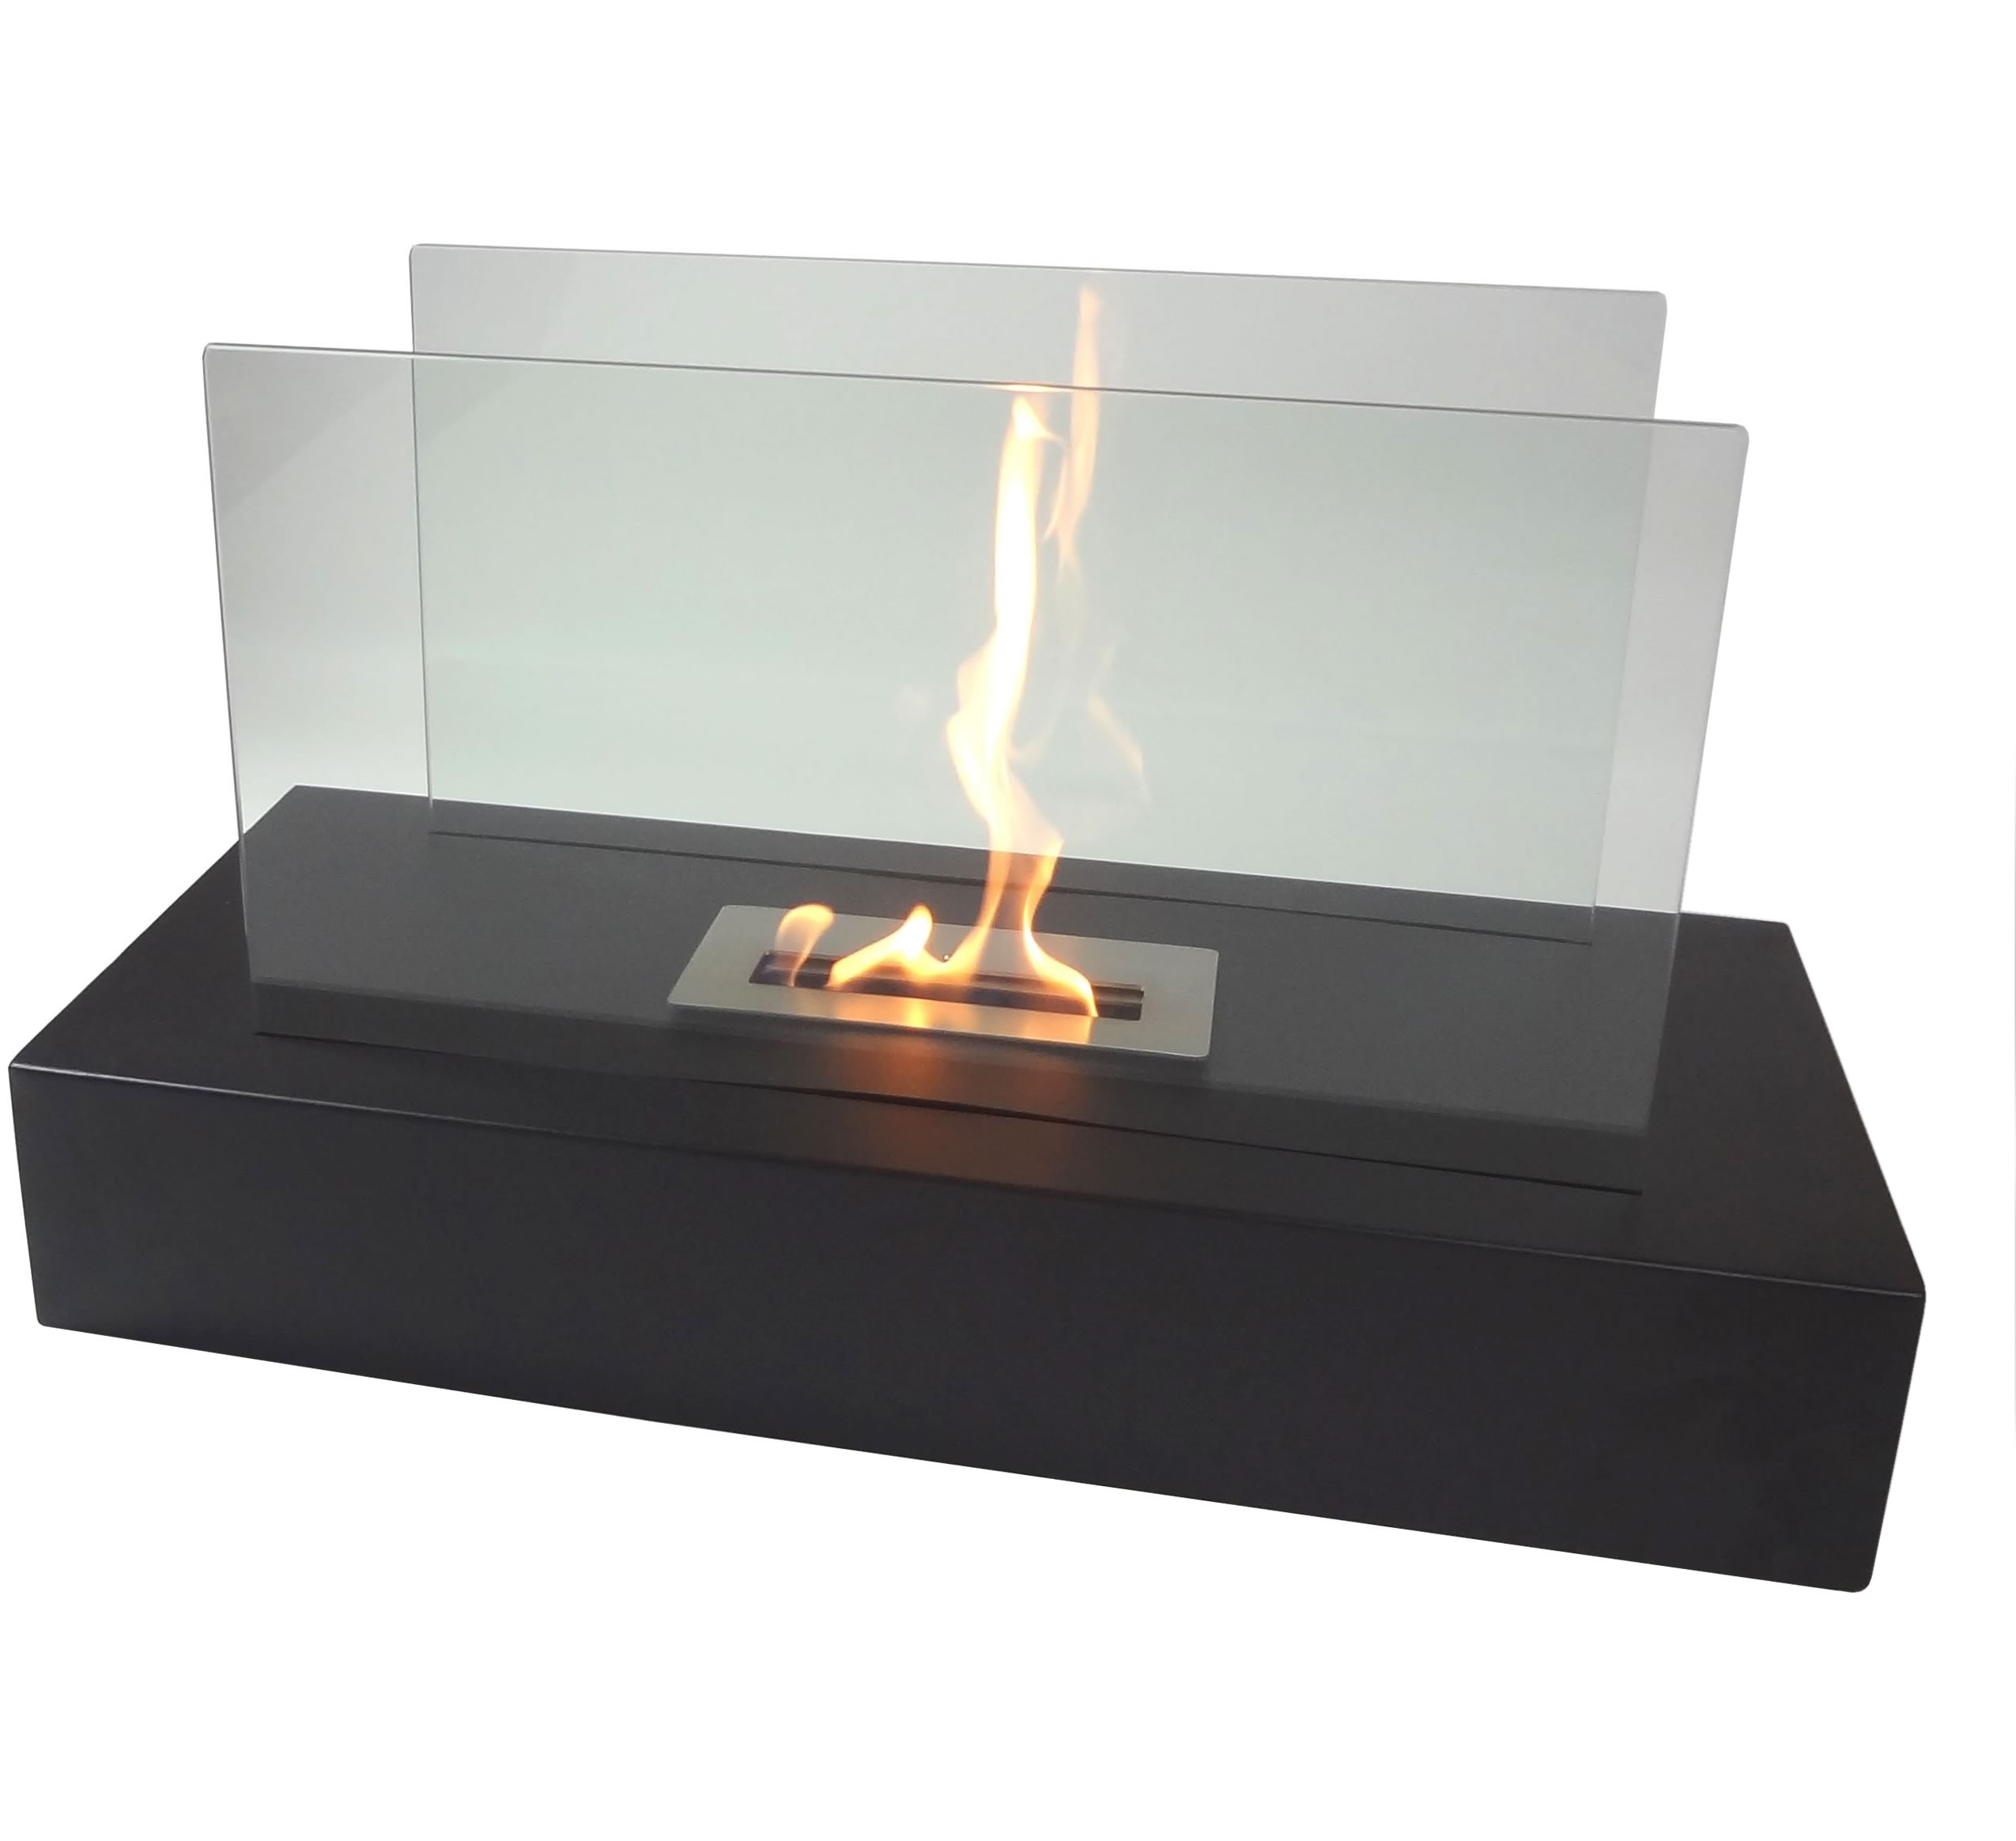 Fiamme Freestanding Fireplace 18.5